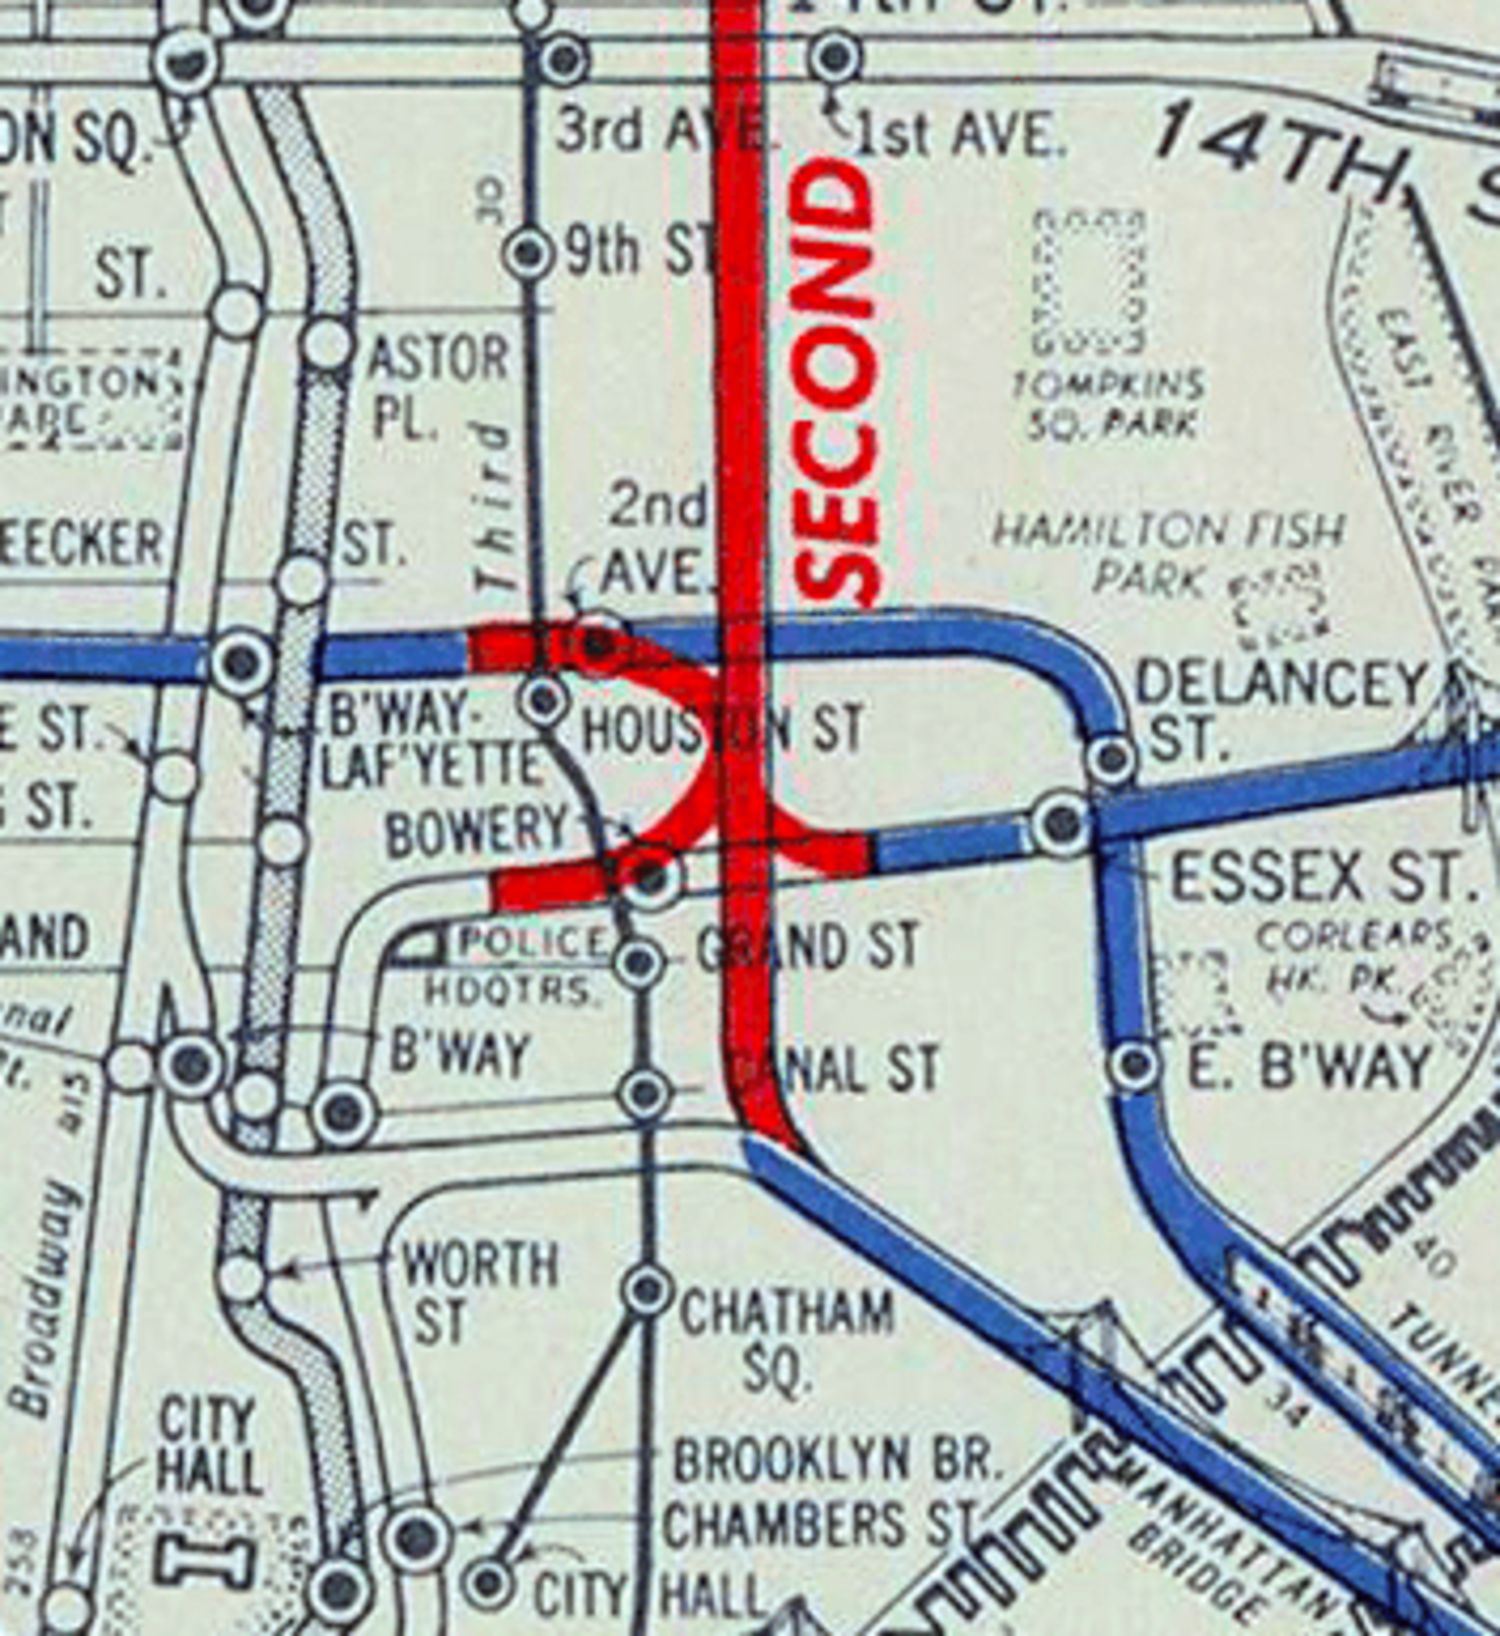 Nyc Subway Map With Second Avenue.Map Porn A History Of Second Avenue Subway Through Vintage Maps